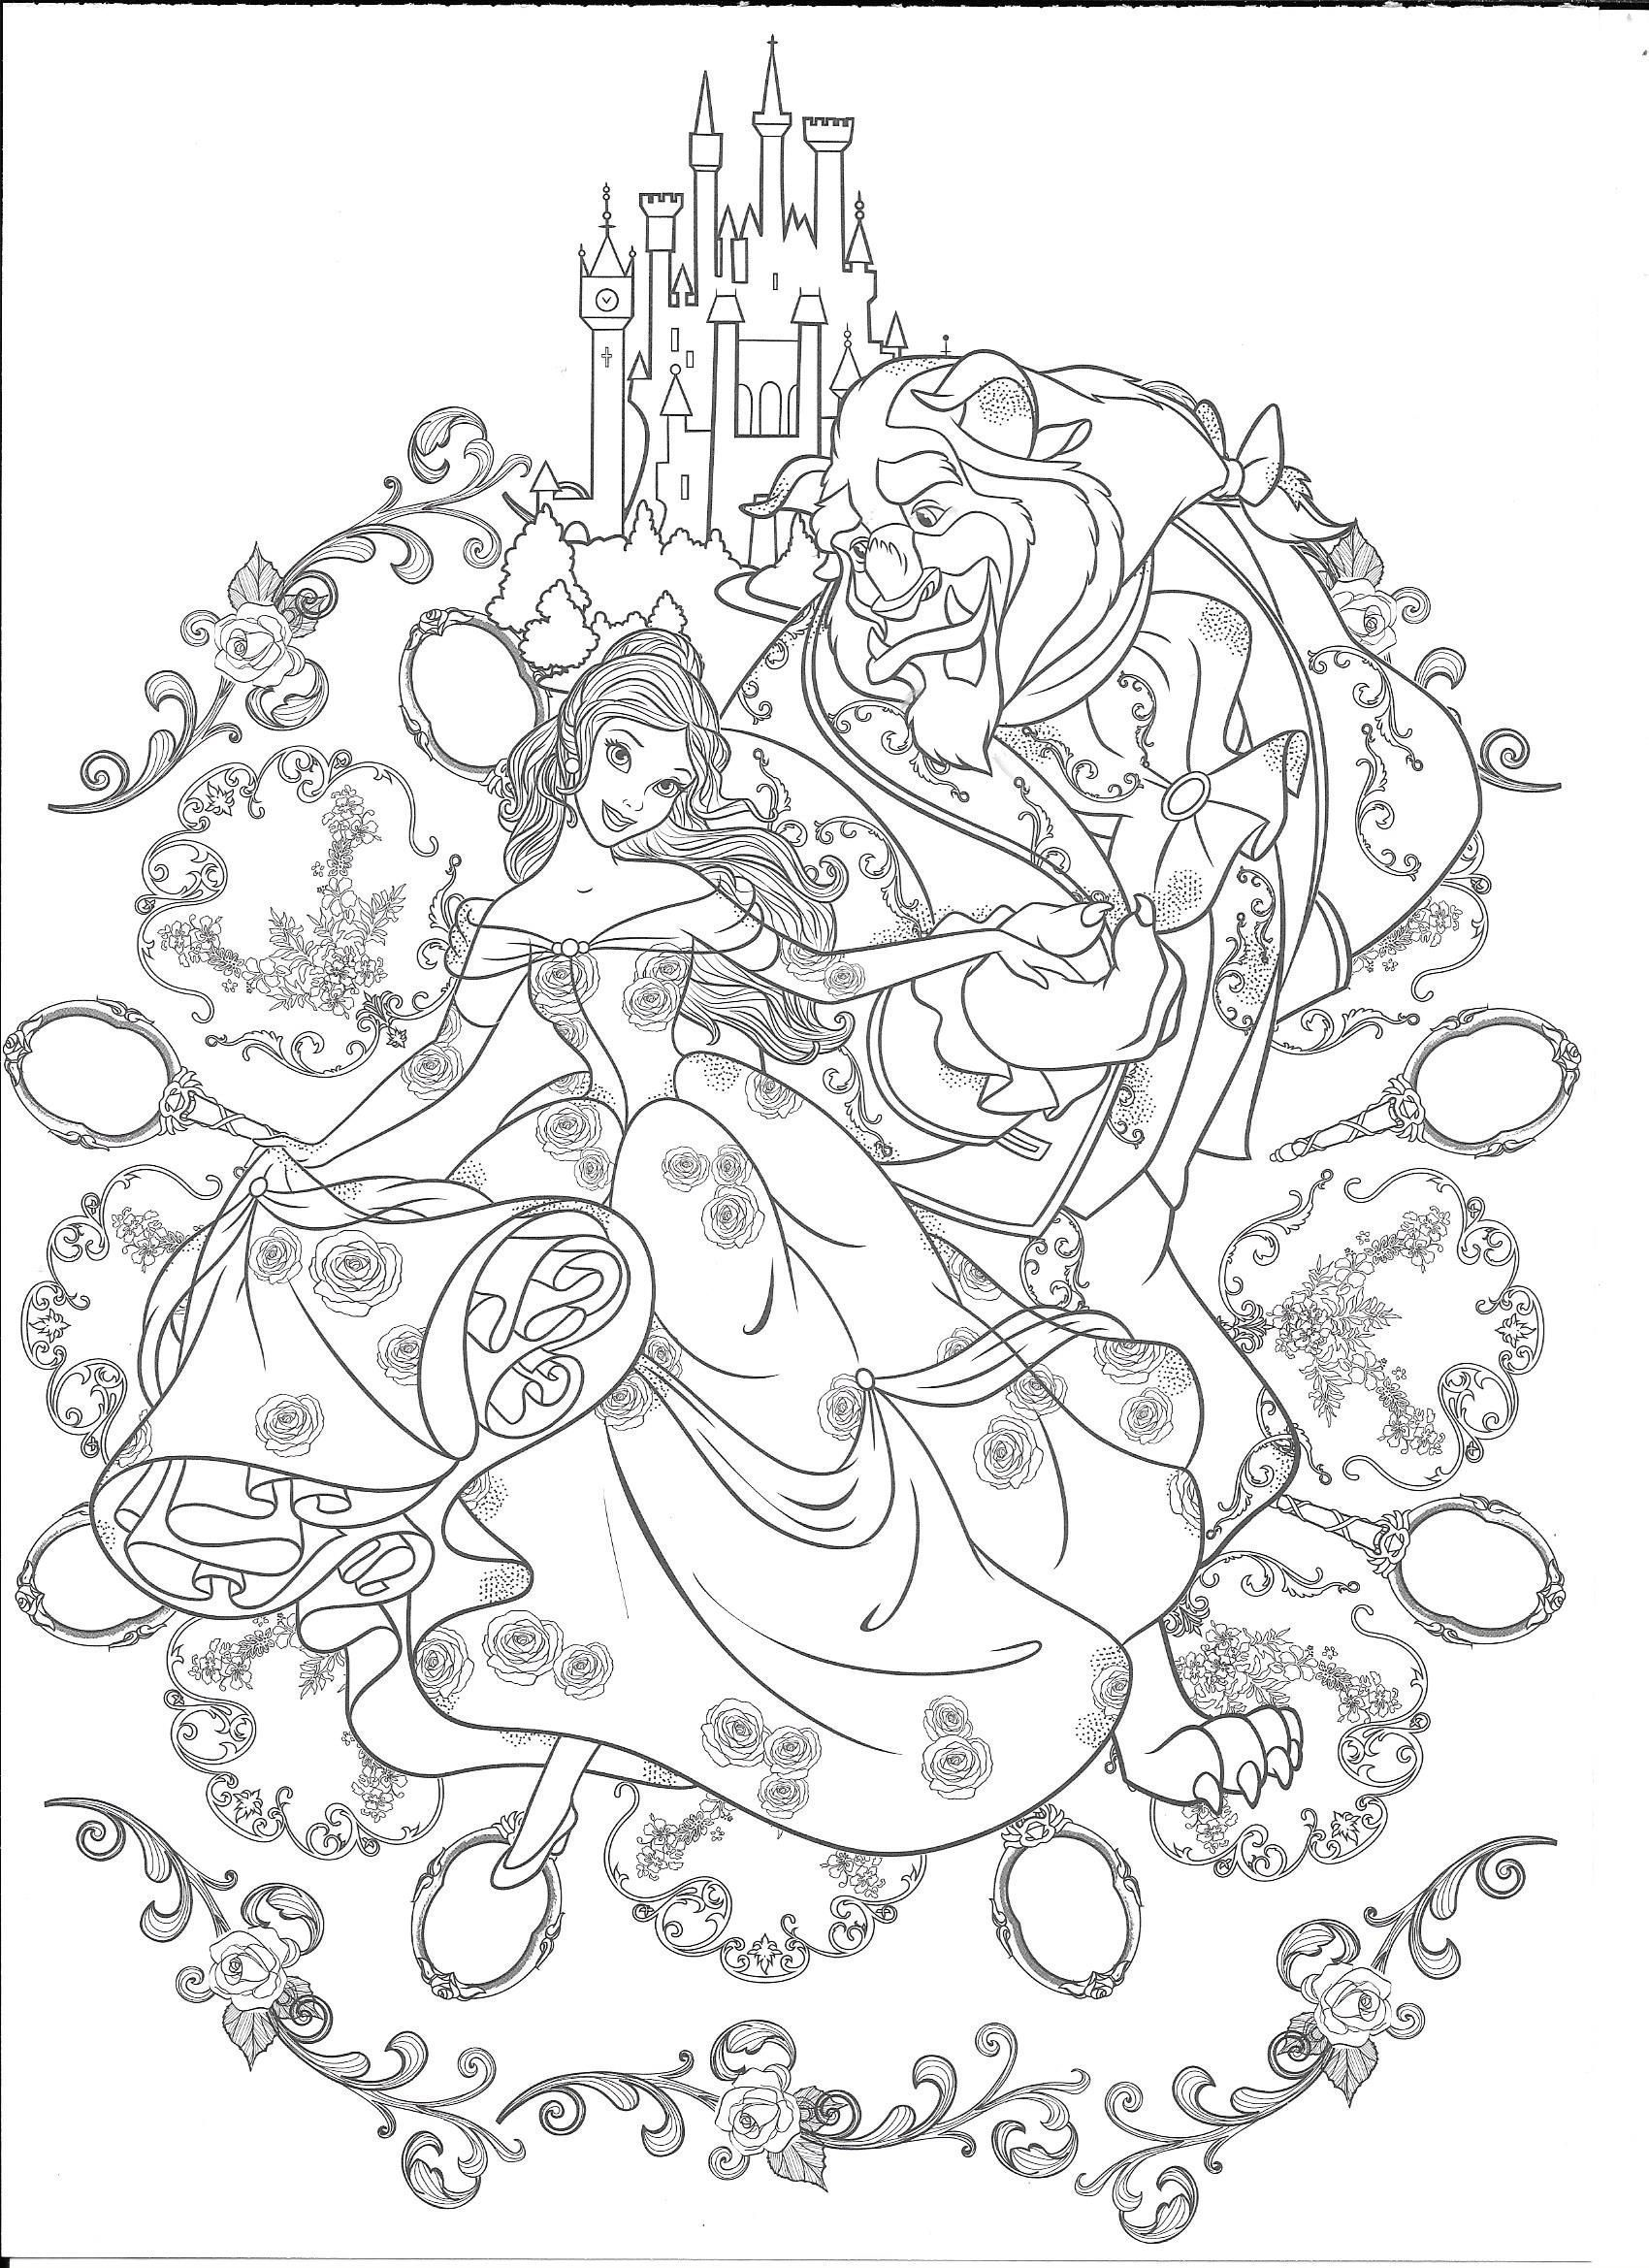 Pin By Lesley Laureano On Images 6 Disney Coloring Pages Disney Coloring Pages Disney Princess Coloring Pages Princess Coloring Pages